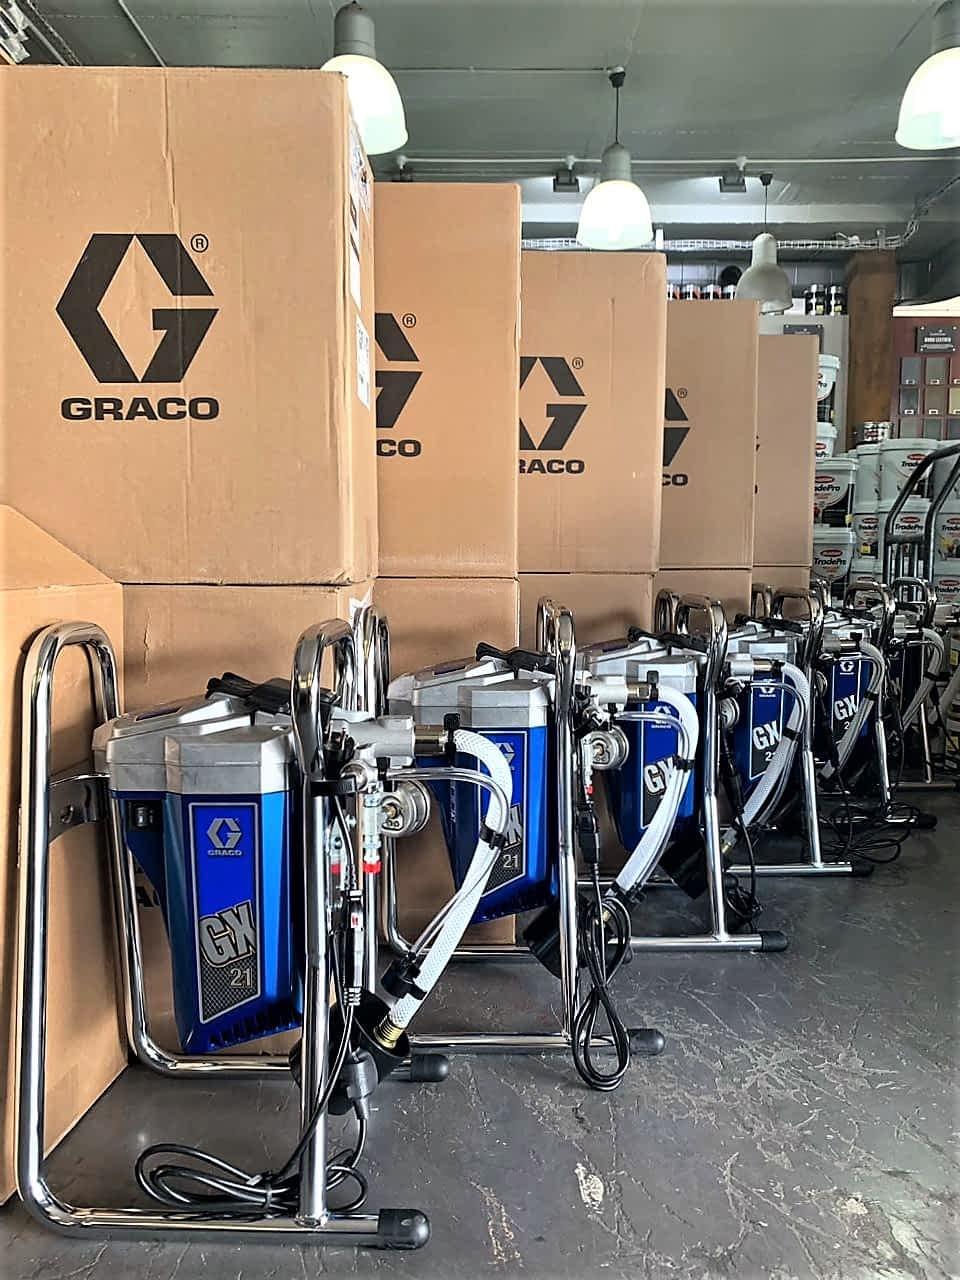 Graco GX21 Airless Paint Sprayer stock at Midas Paints Tygervalley